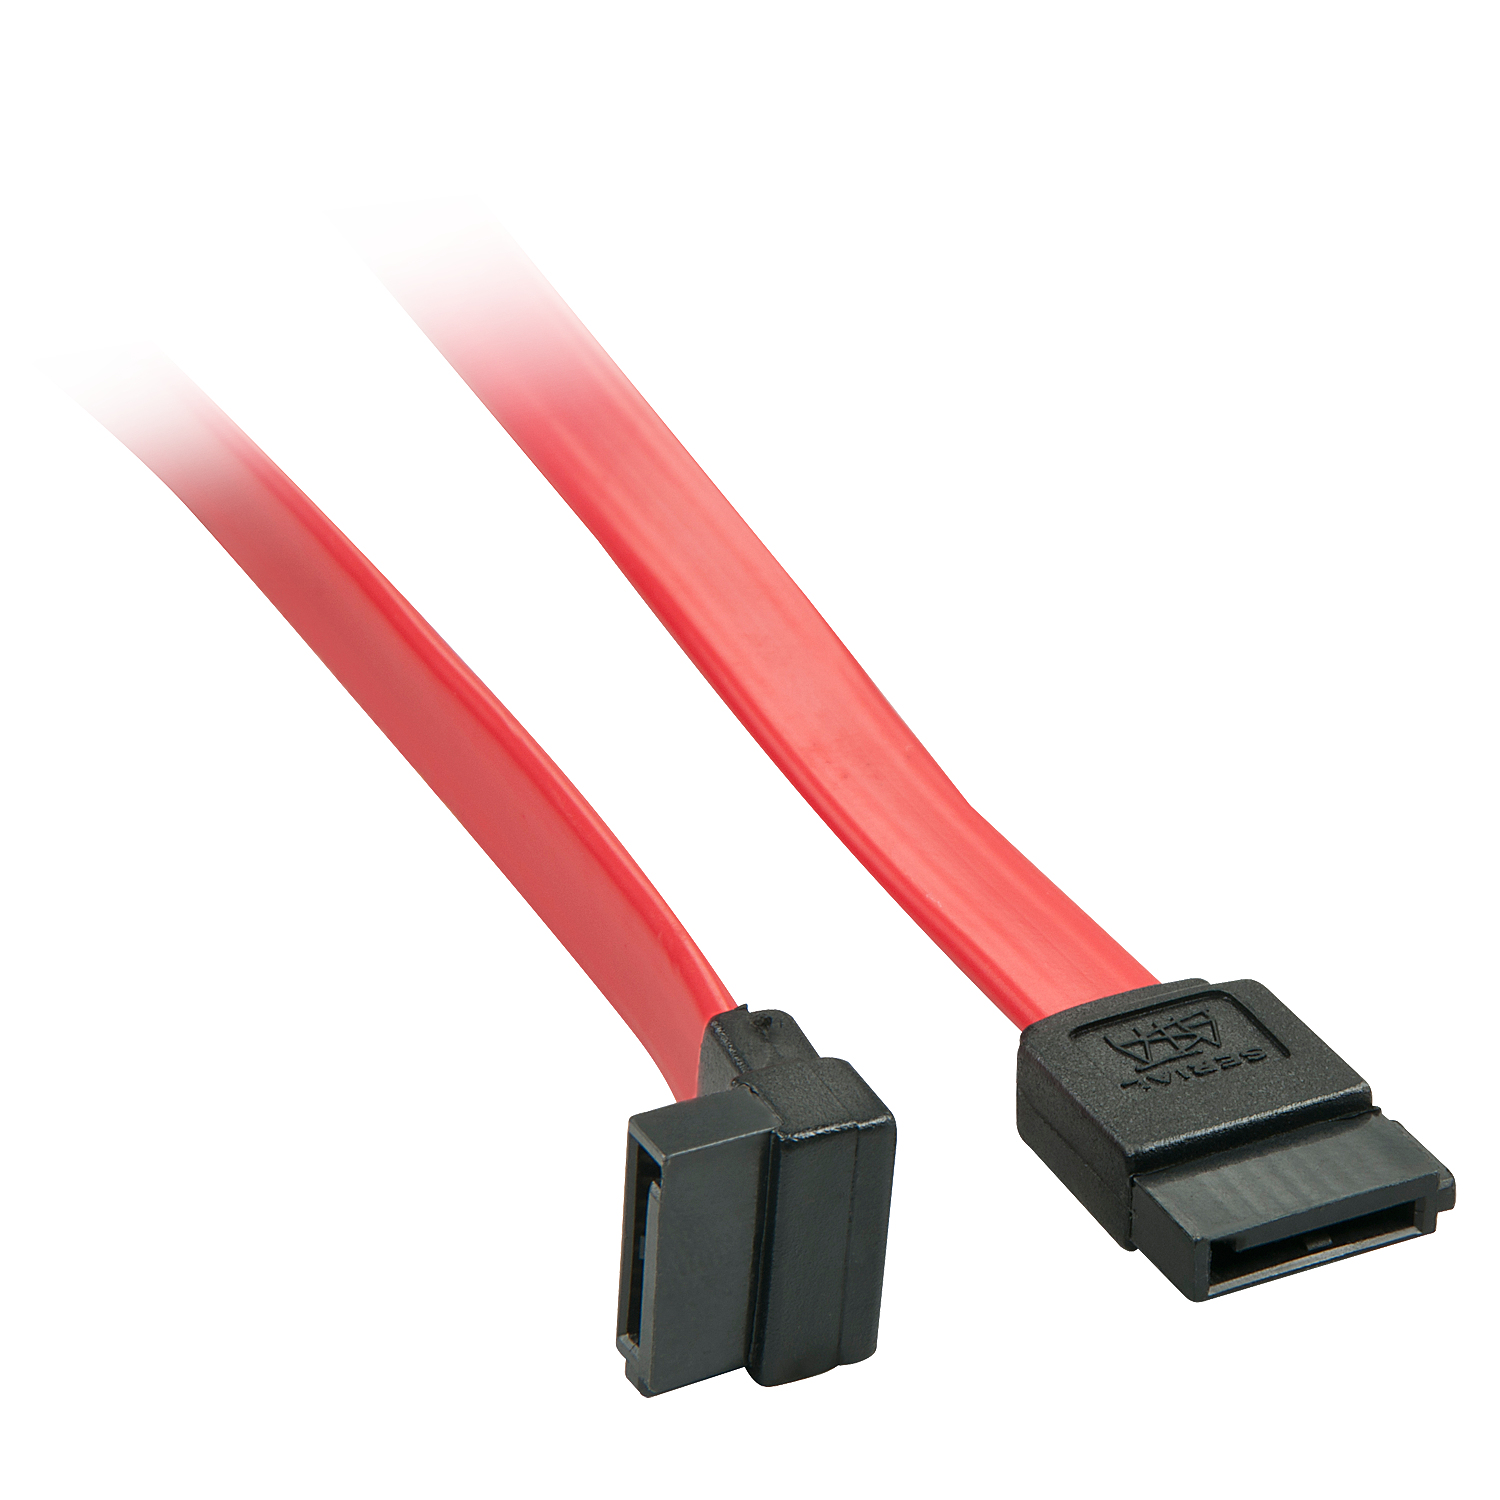 Lindy 33350 SATA cable 0.2 m SATA 7-pin Red